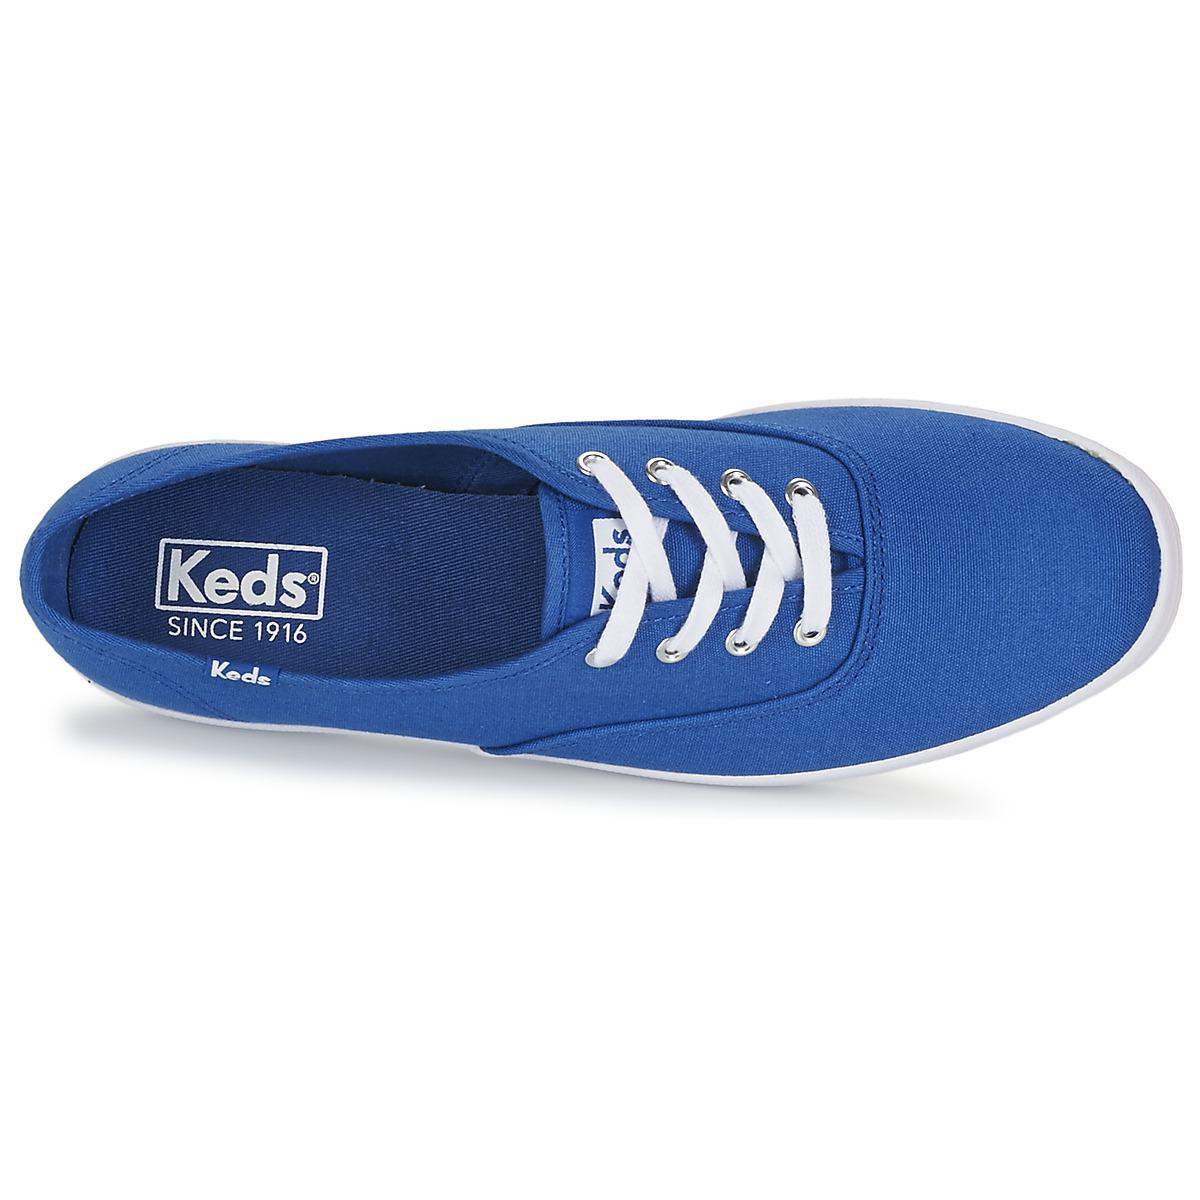 2c9954ee55b Keds Champion Seasonal Solids Women s Shoes (trainers) In Blue in Blue -  Lyst